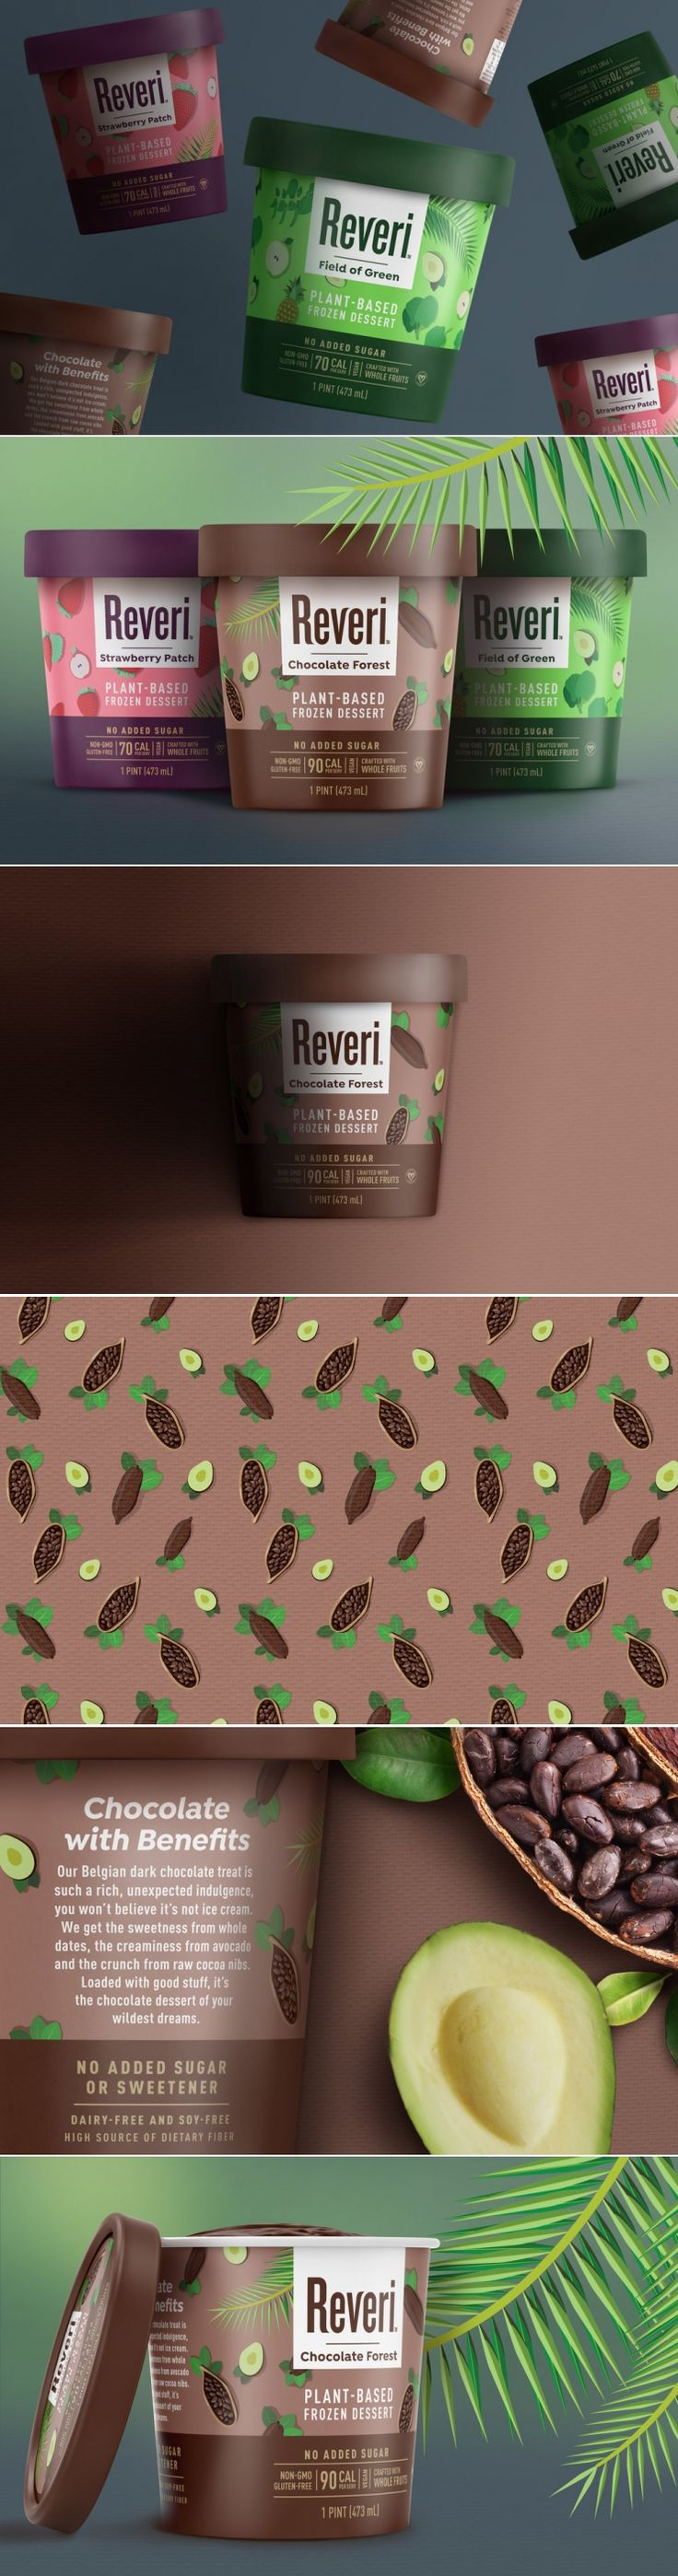 This Cute Frozen Desert Has a Little Surprise For You — The Dieline | Packaging & Branding Design & Innovation News